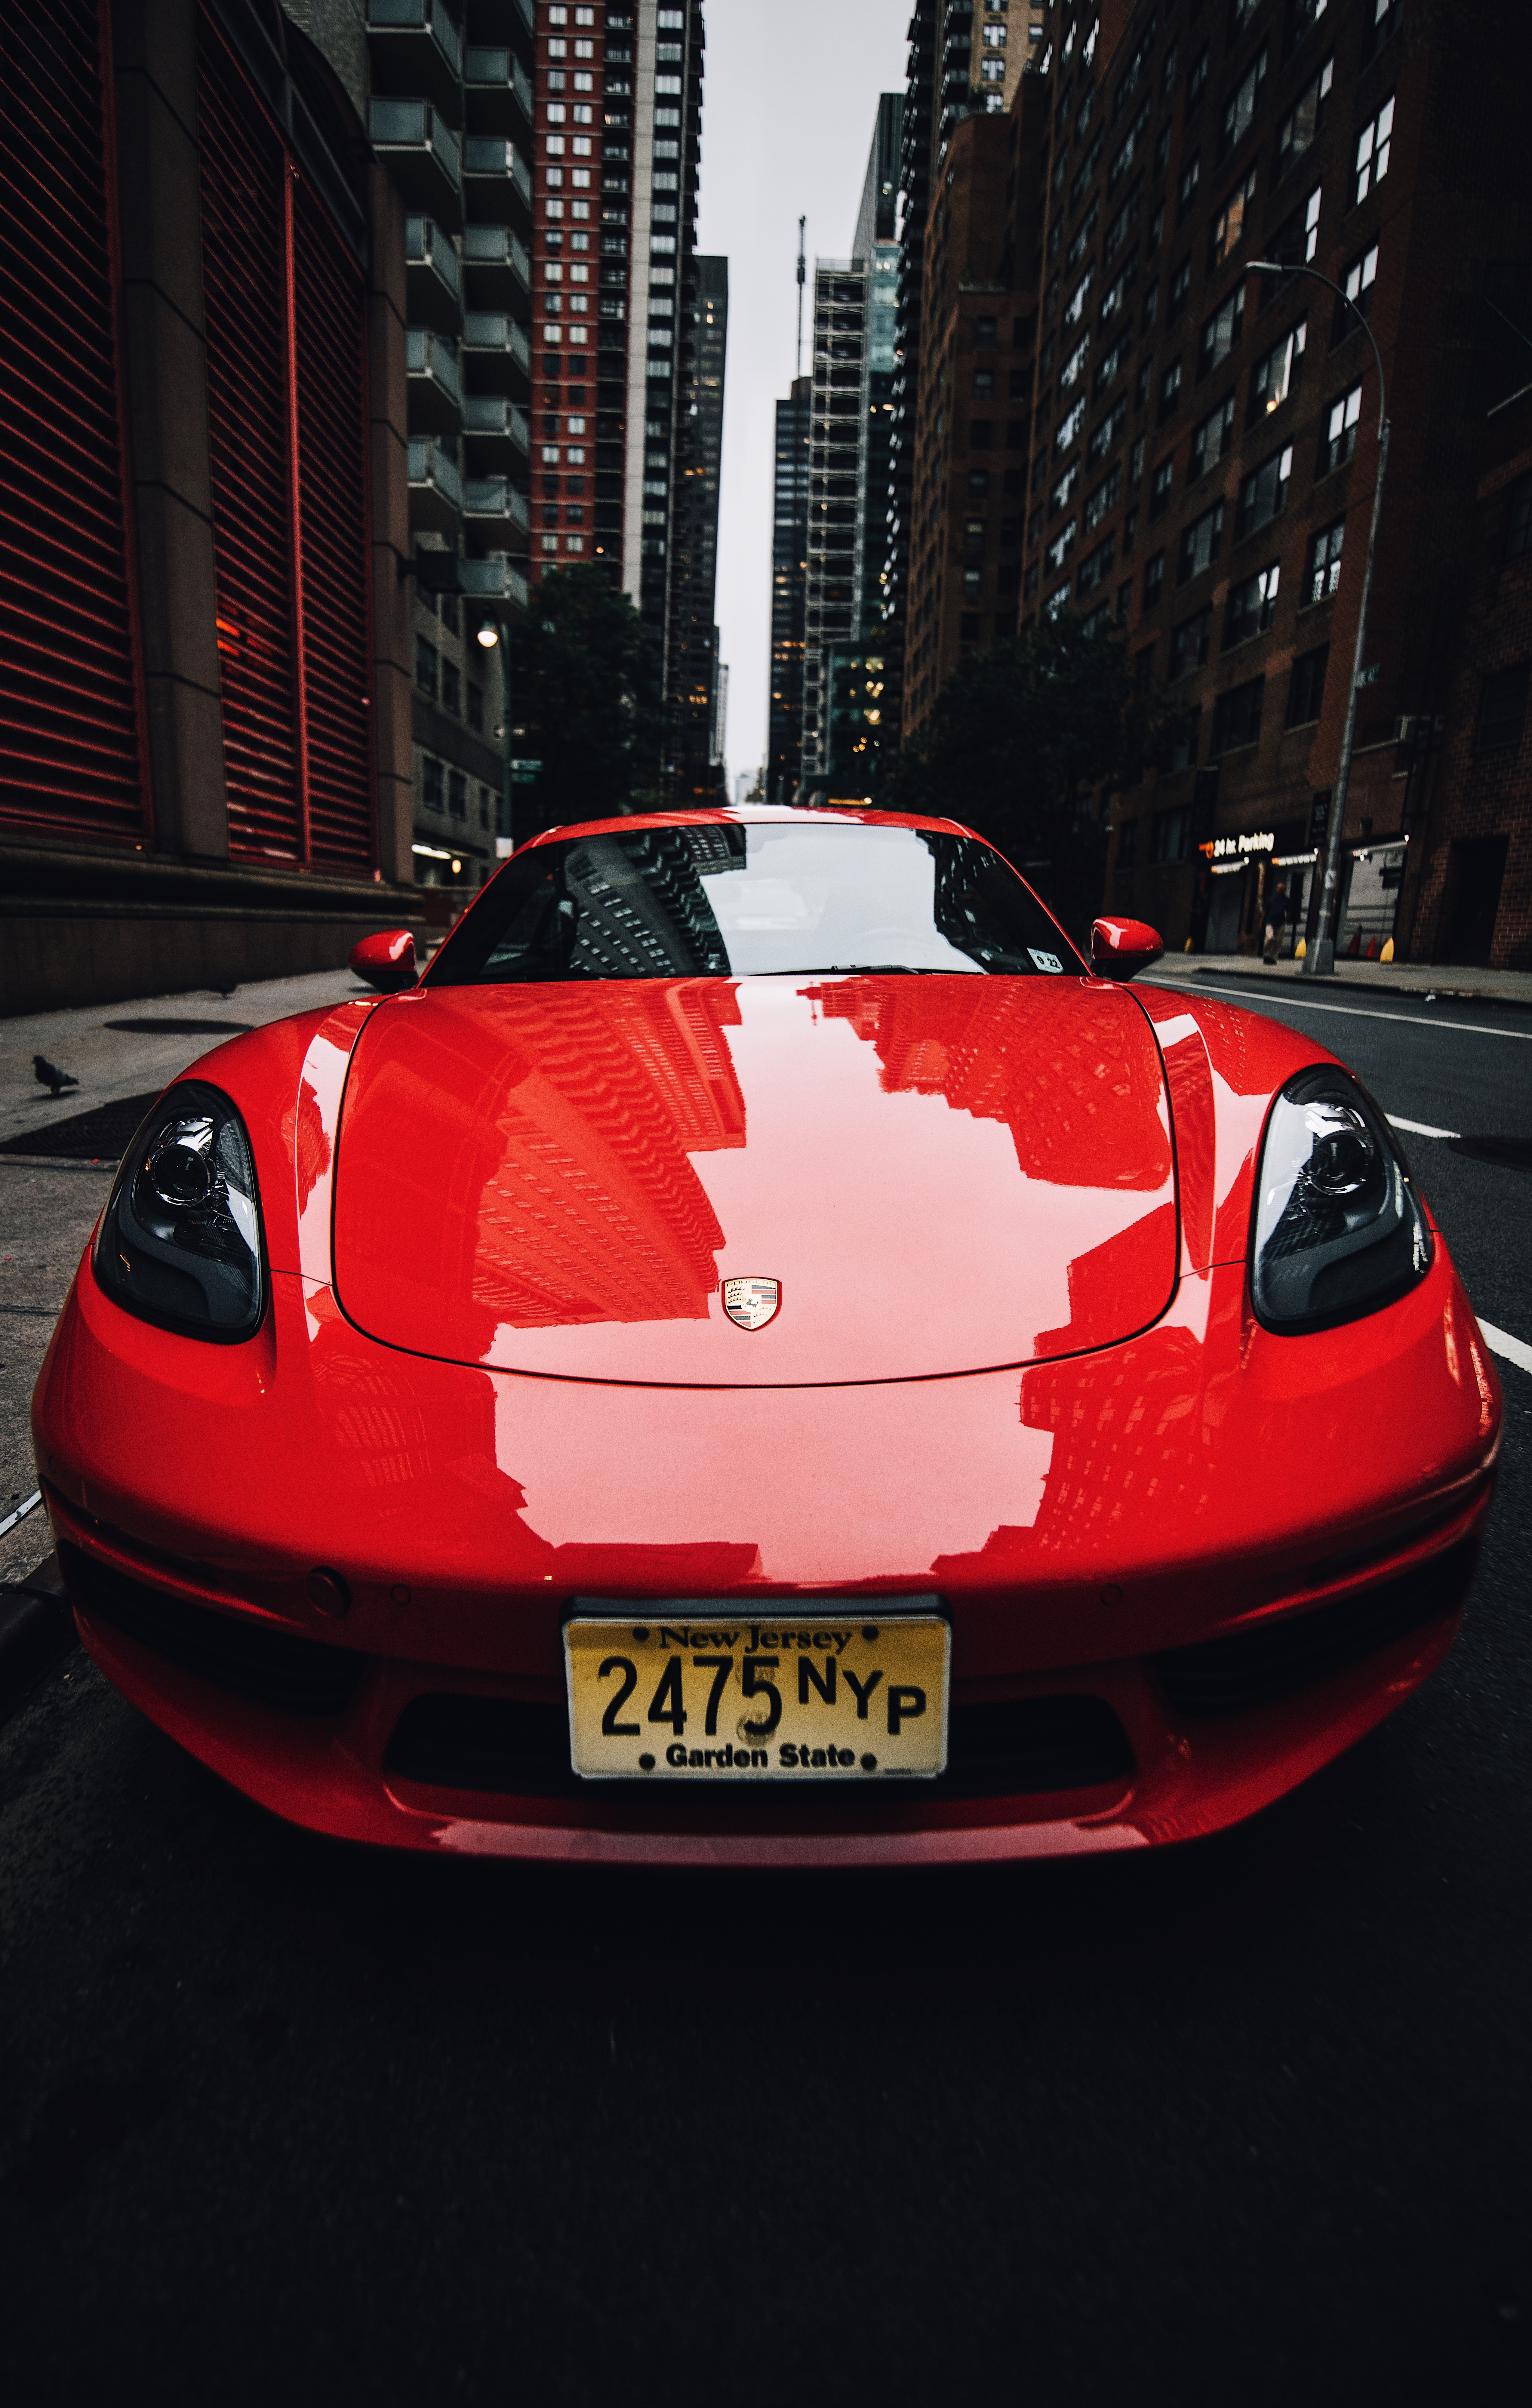 152512 download wallpaper Cars, Ferrari F430 Challenge, Ferrari, Car, Machine, Sports Car, Sports, Front View screensavers and pictures for free